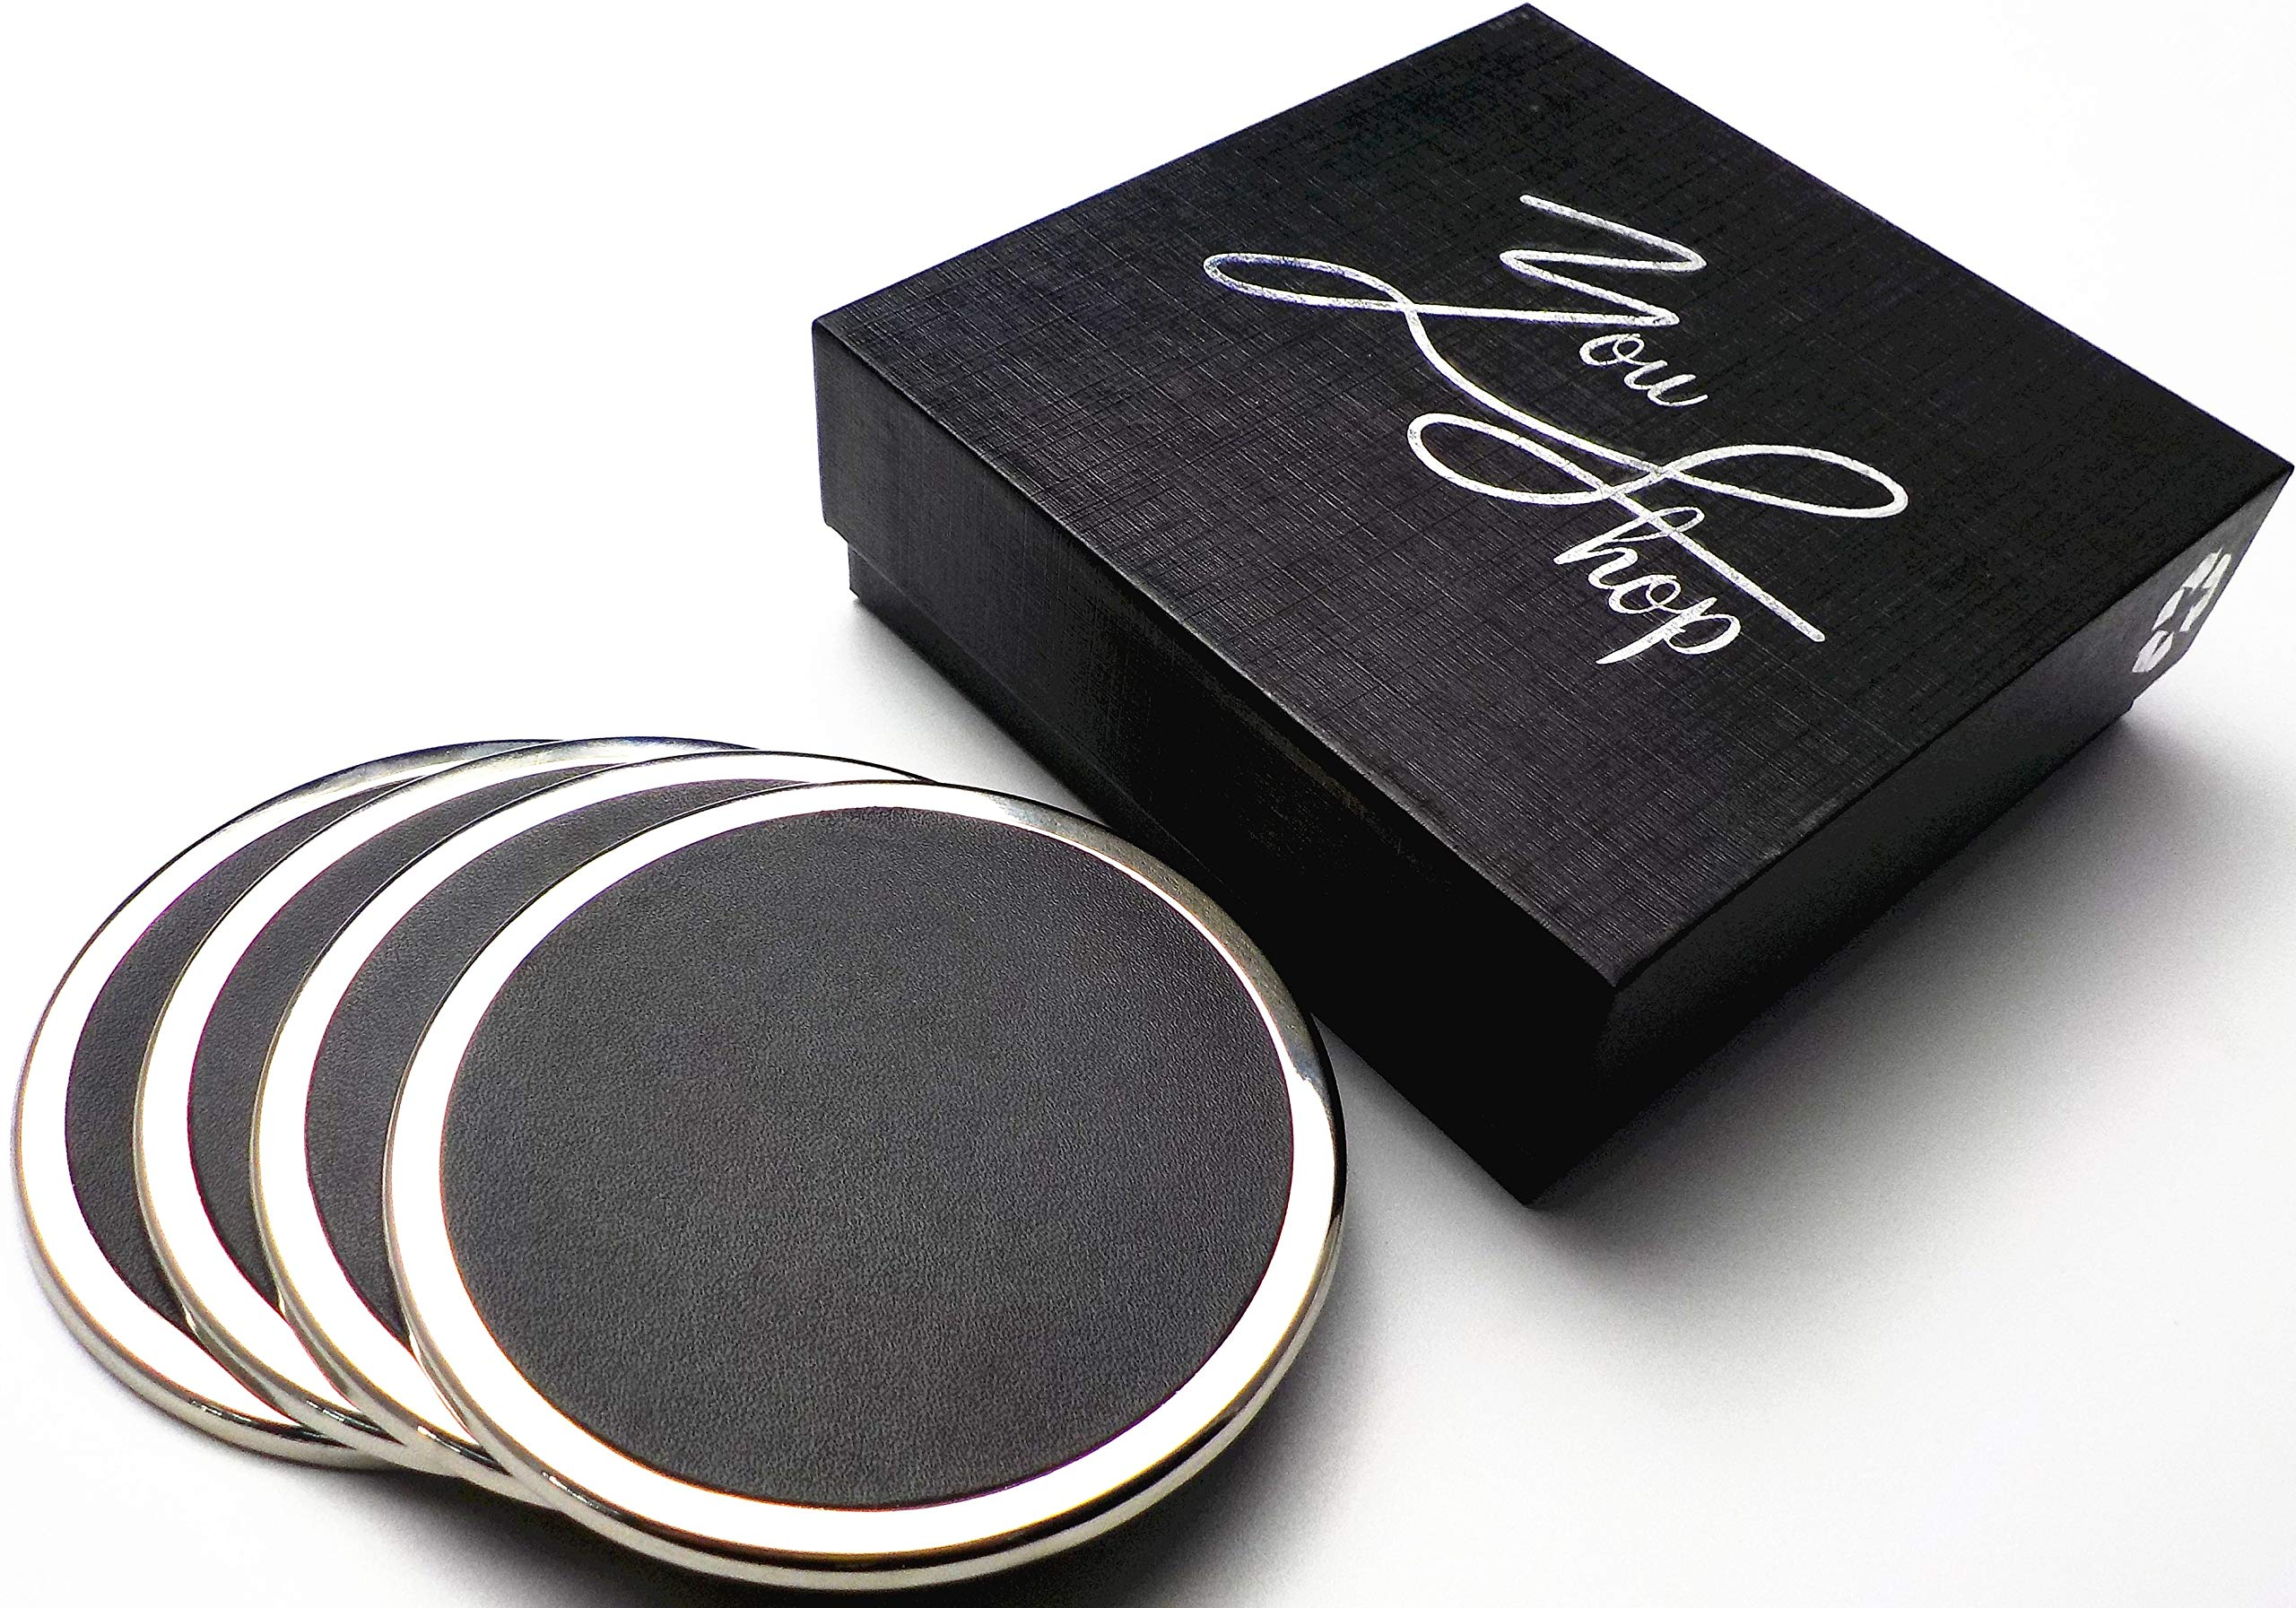 YouShop Luxury Coasters for Drinks - Premium Metal, Black Leather, Velvet Base | Contemporary and Clean Style, Modern Coaster Set for Living Room, Kitchen, or Office Cup Coasters | Protect Furniture by YouShop (Image #7)